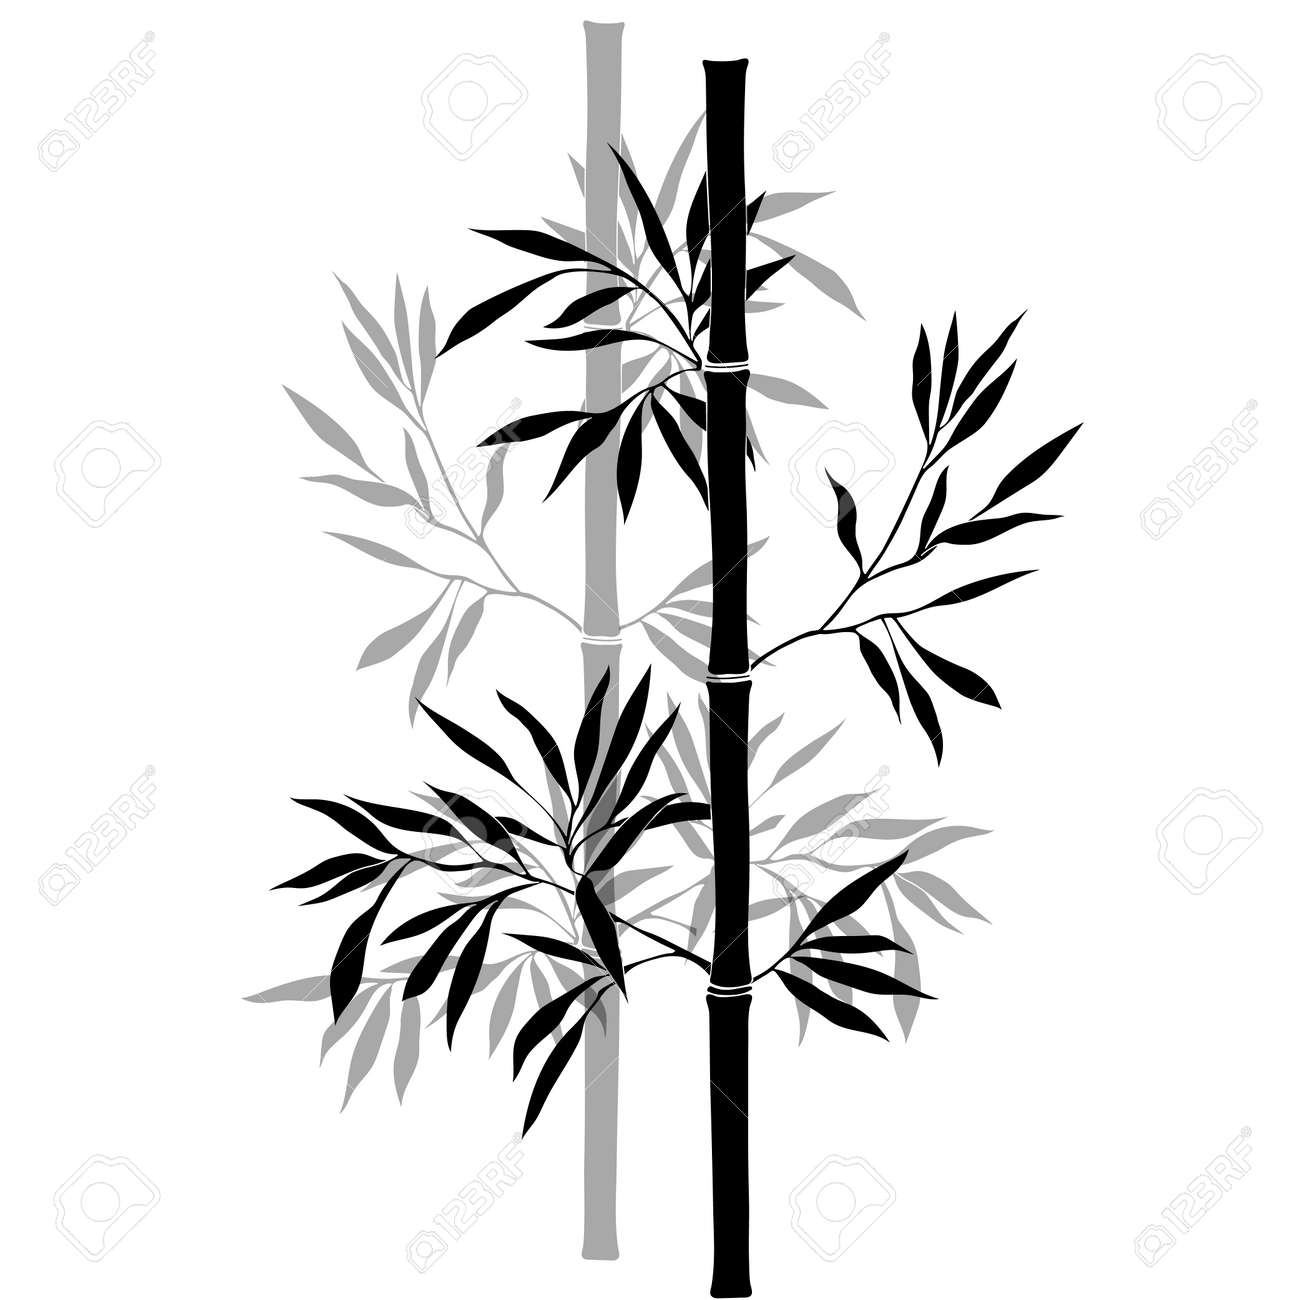 Bamboo branches isolated on the white background. black silhouette. - 41305496